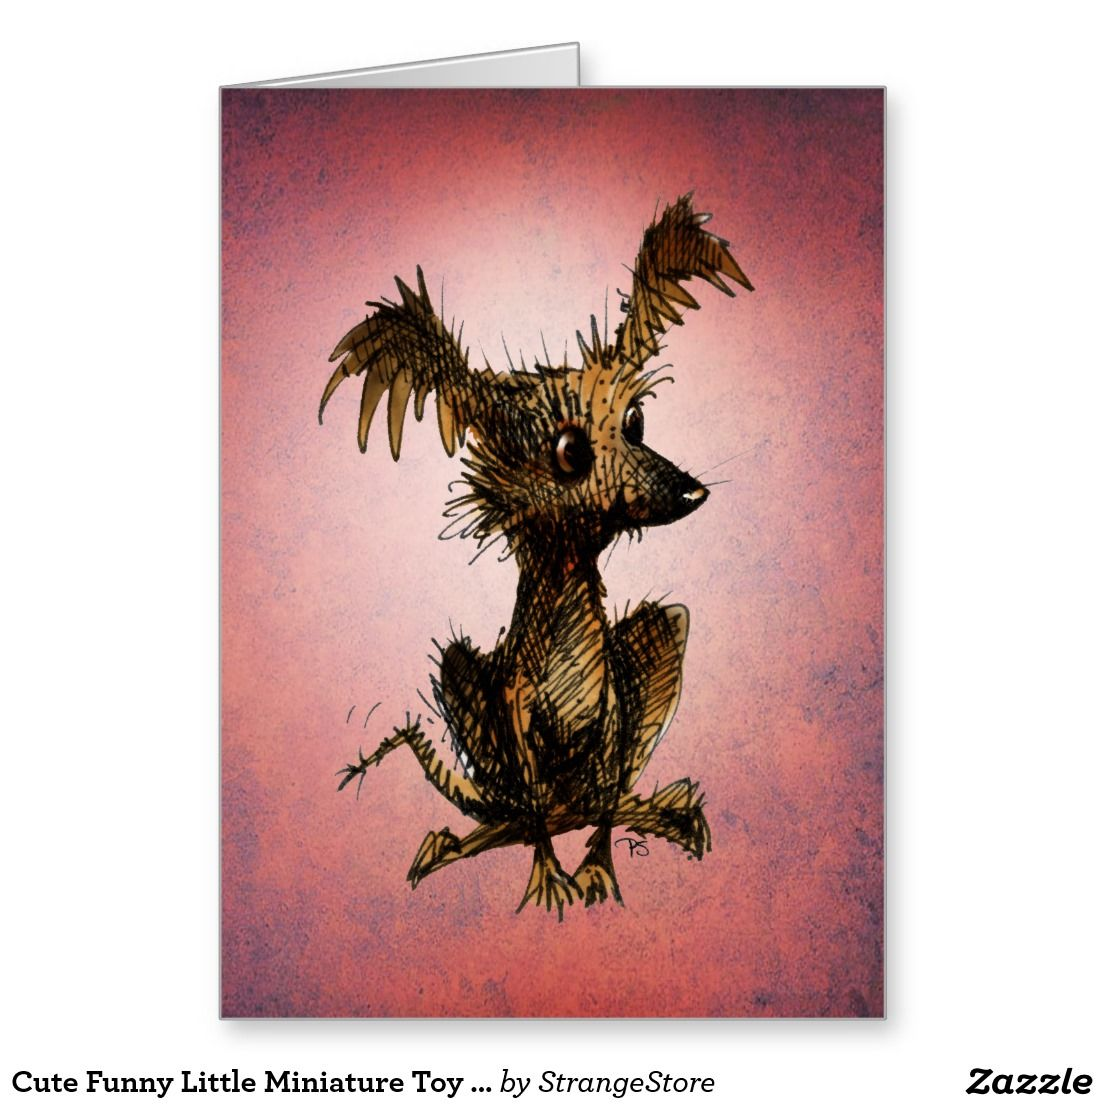 Cute Funny Little Miniature Toy Dog Lover Greeting Card from Paul Stickland's #StrangeStore